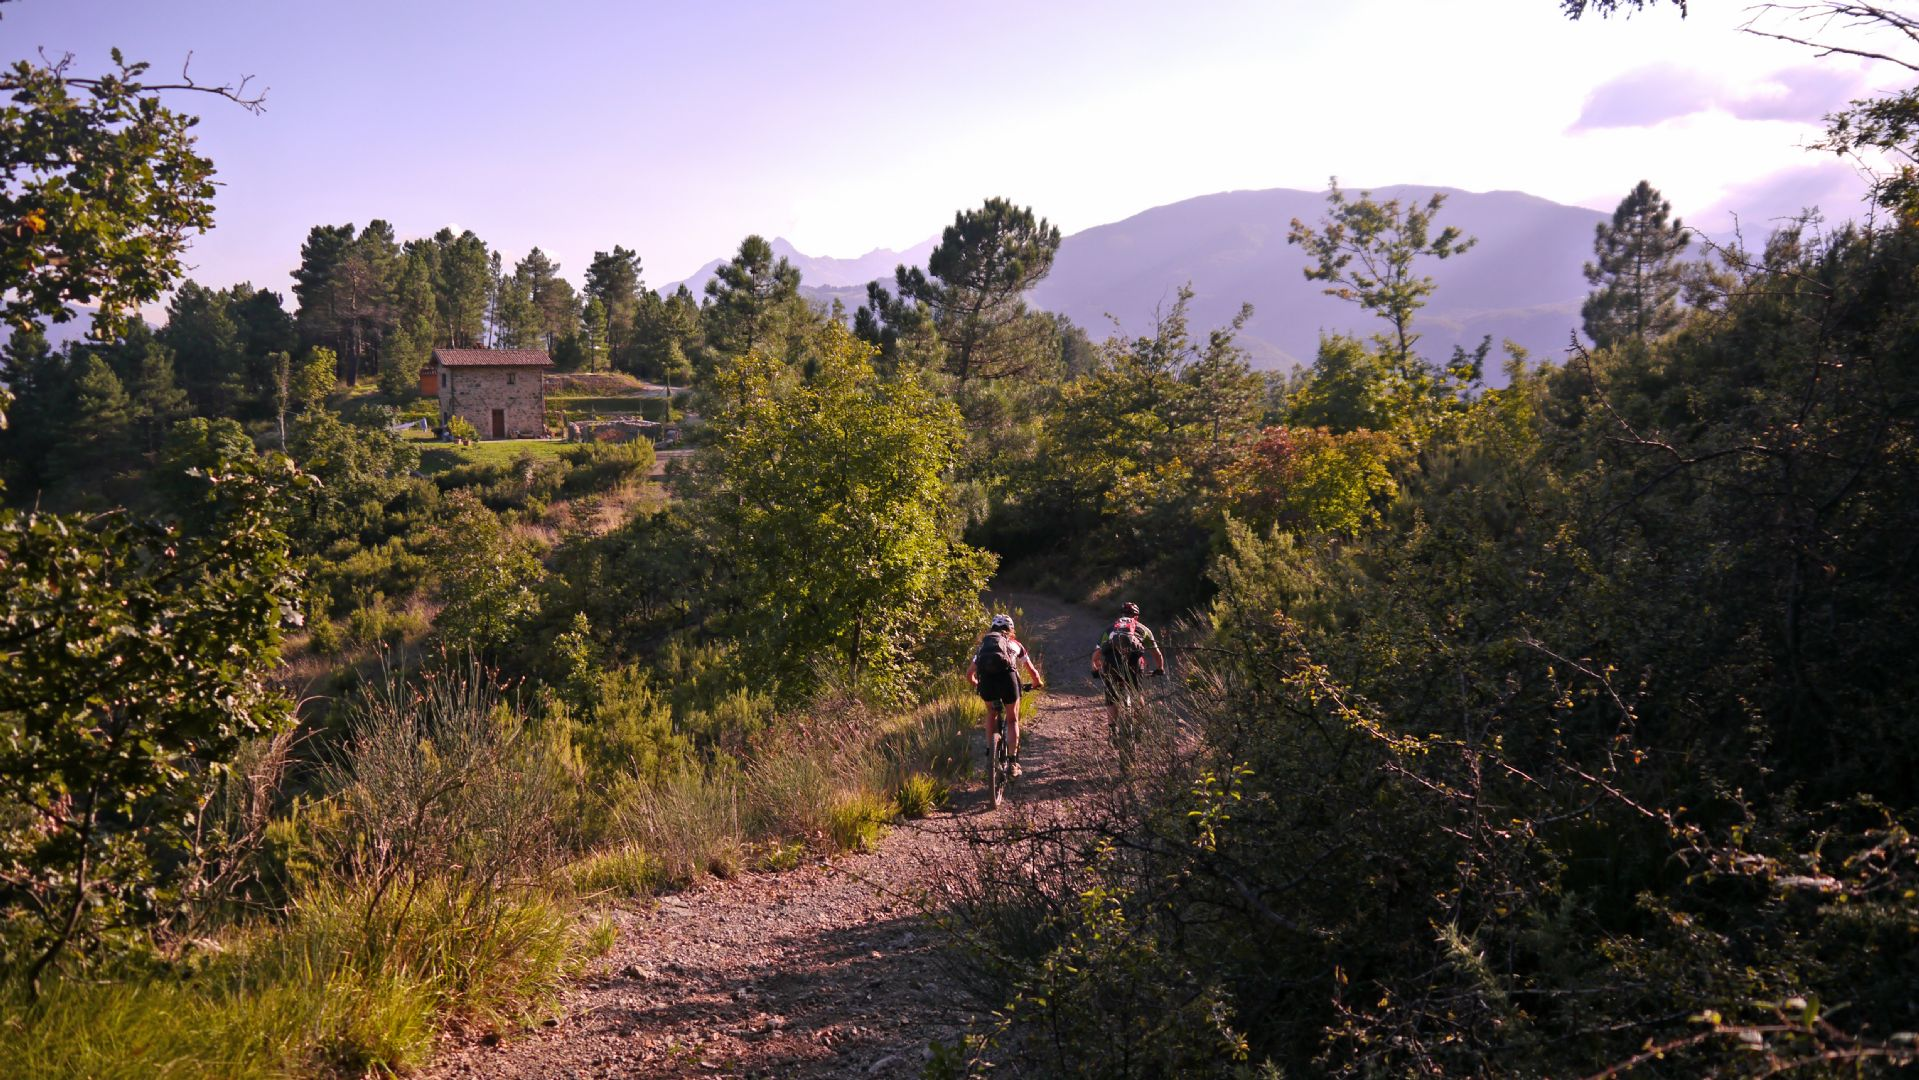 Towards the mountains.jpg - Italy - Tuscany - Secret Apennine Trails - Italia Mountain Biking